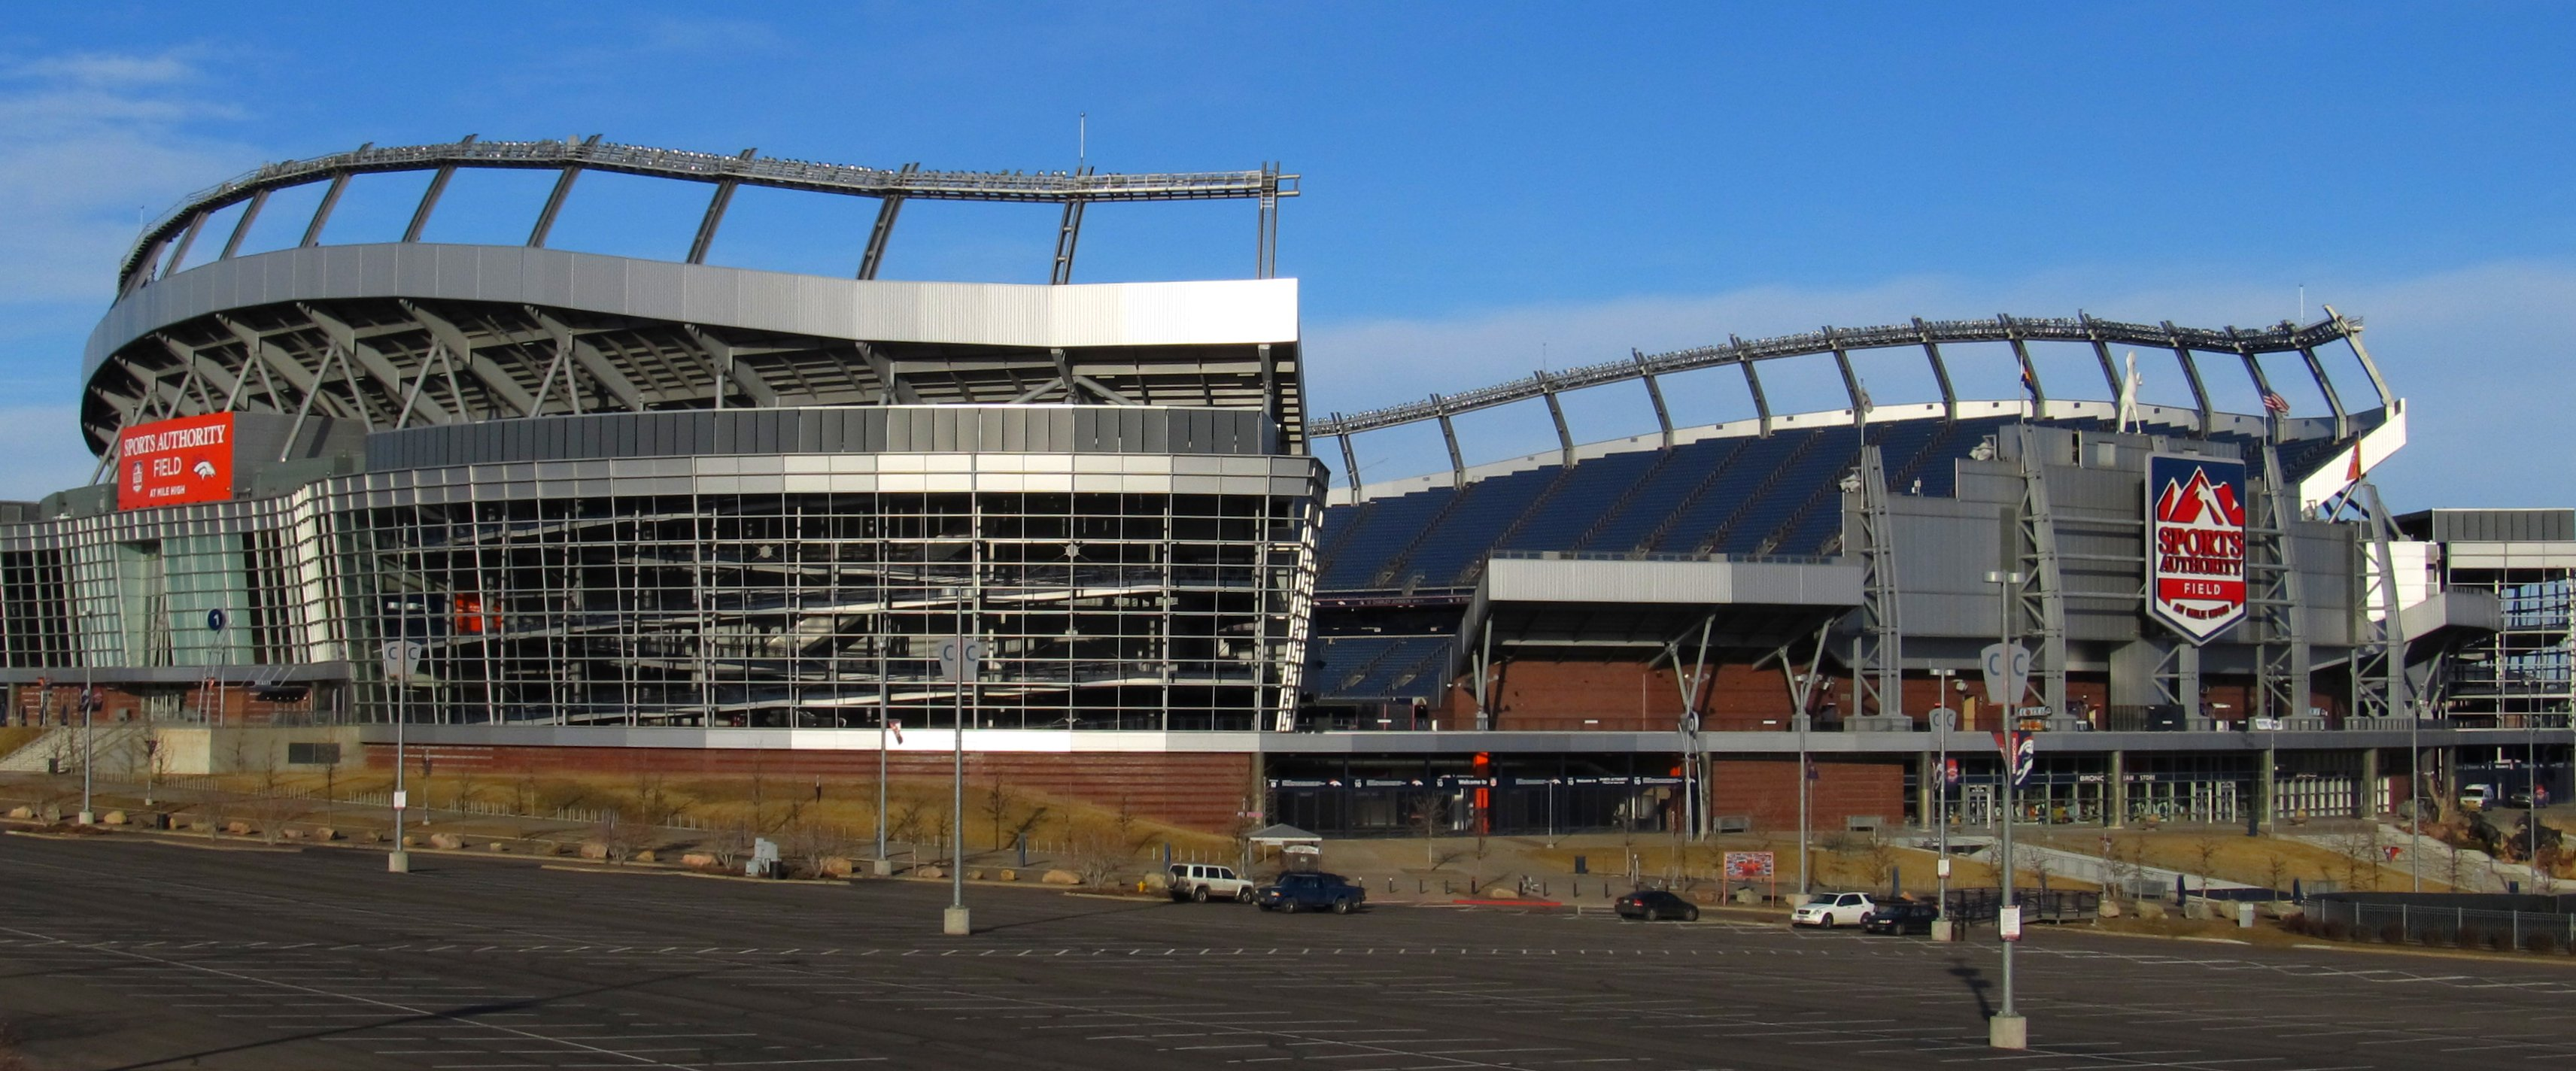 Empower Field At Mile High Parking Lots